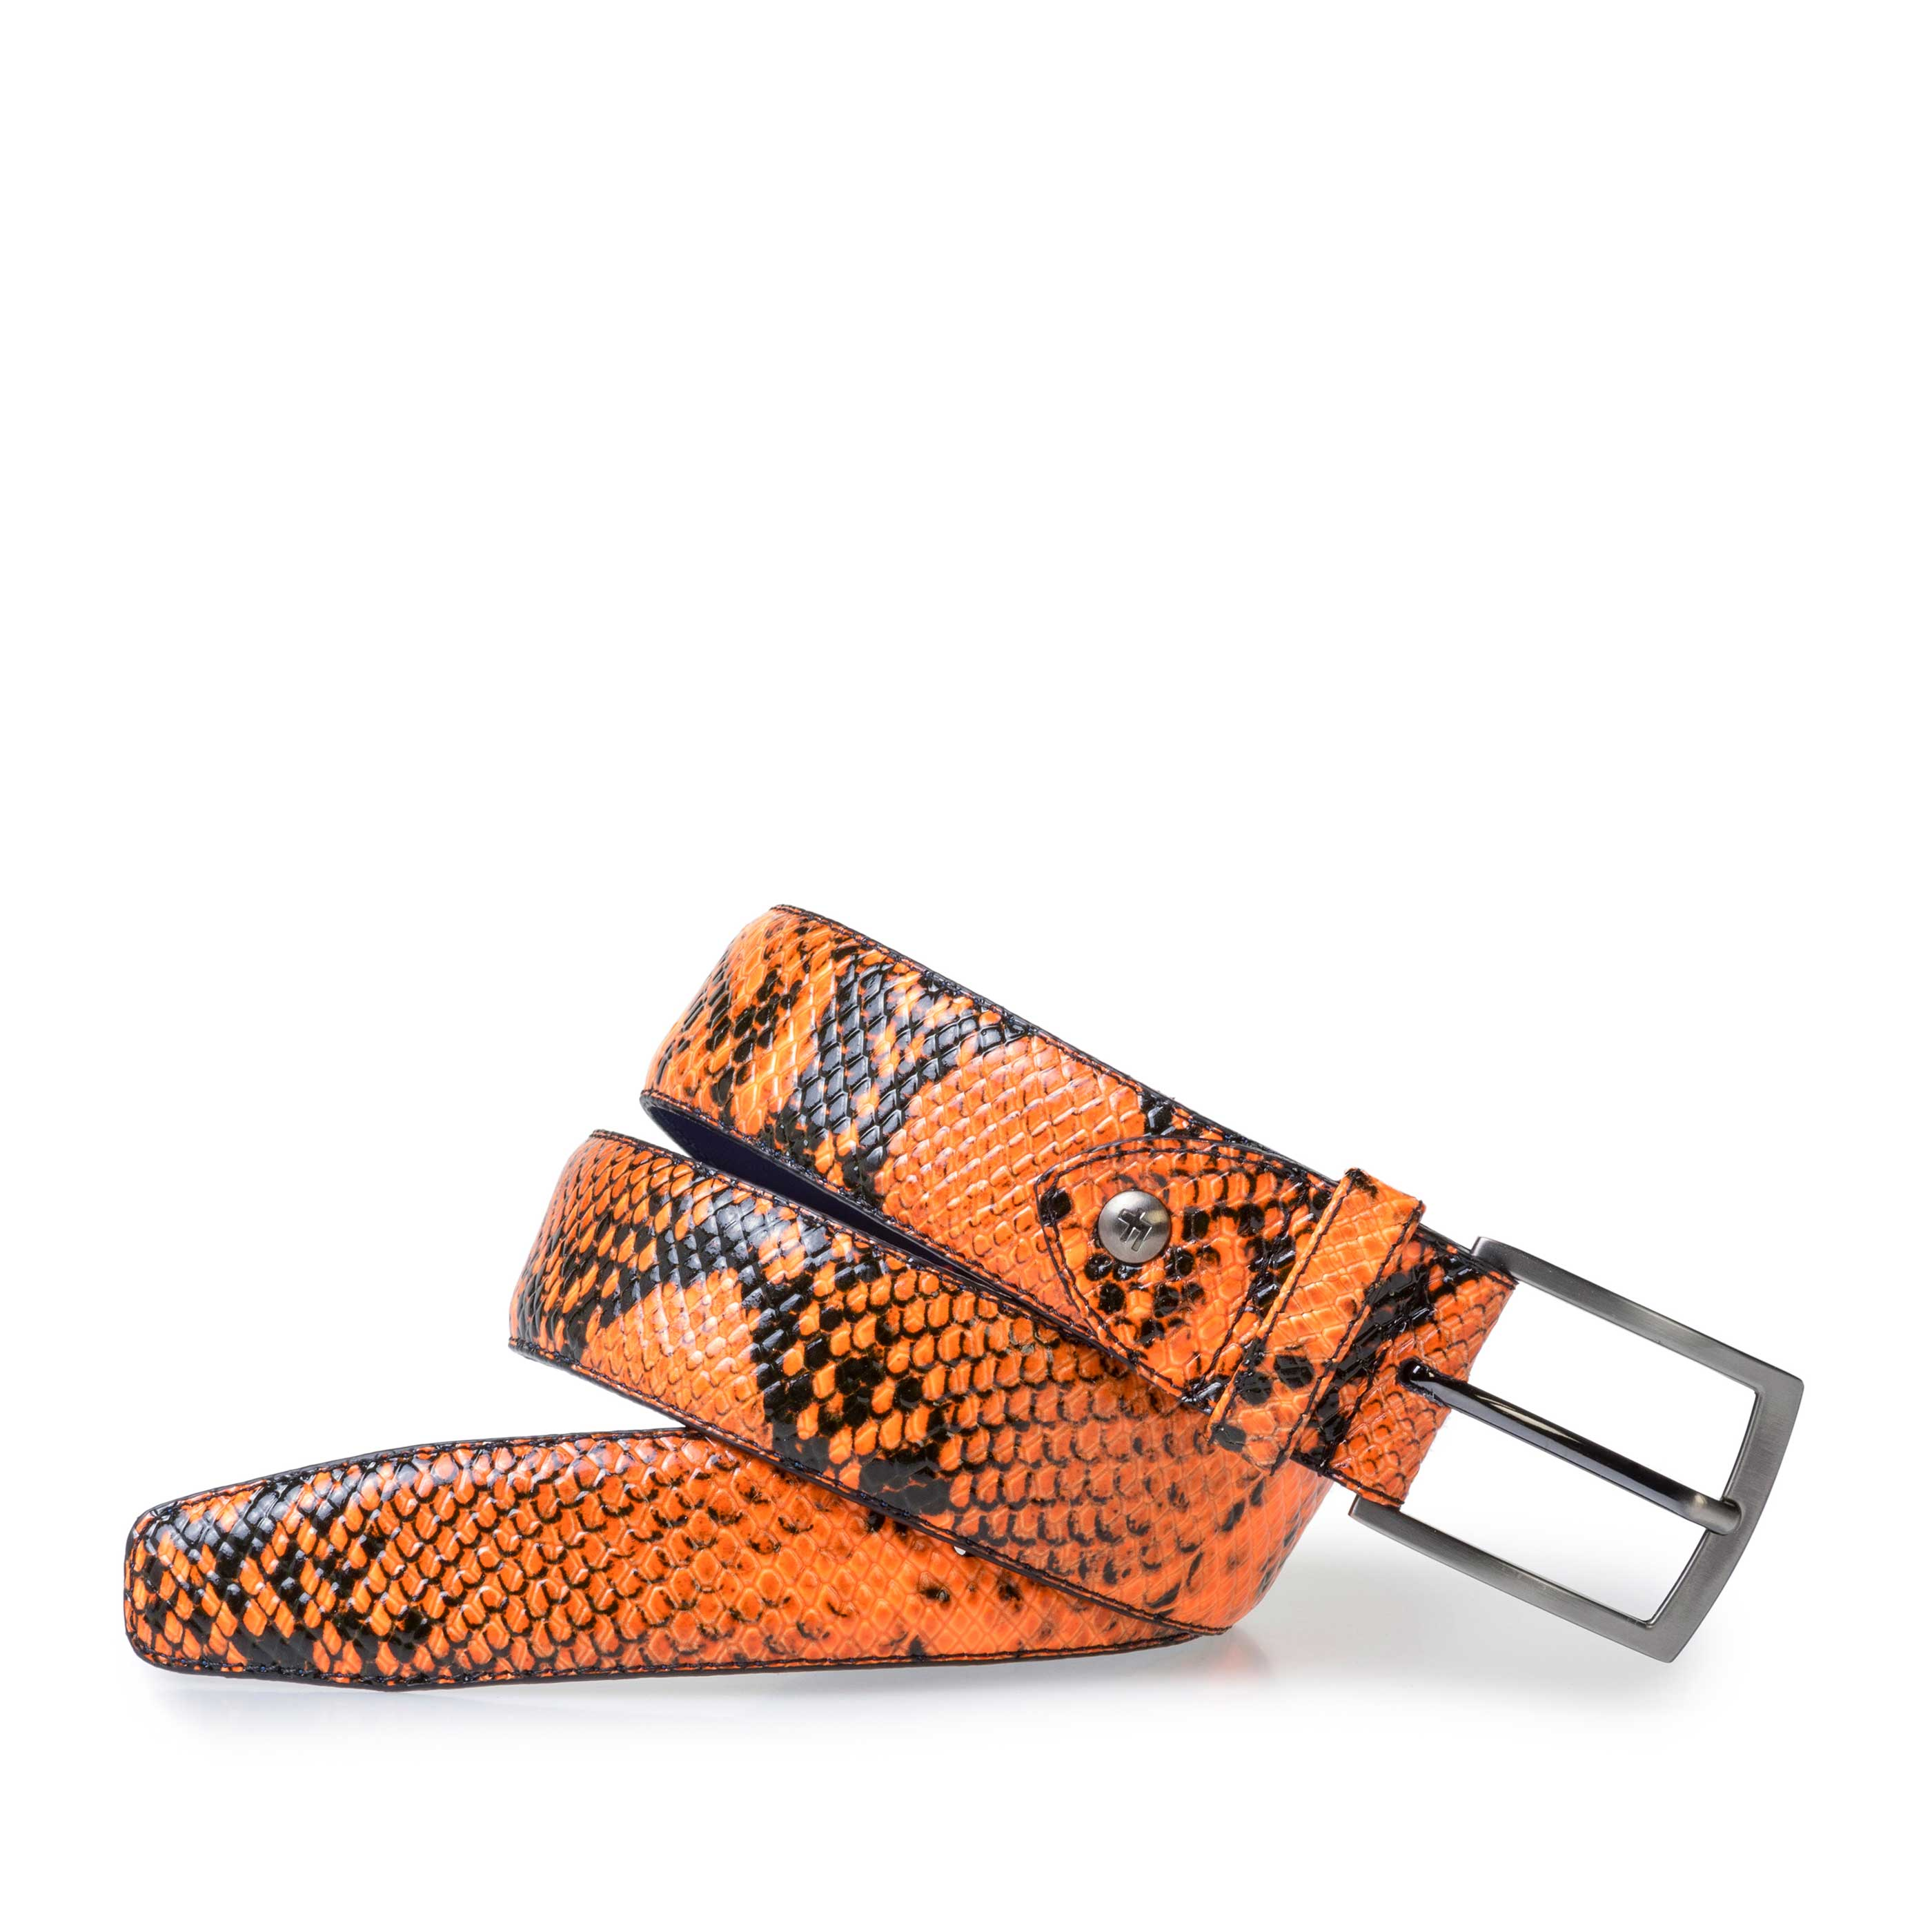 75201/62 - Premium fluorescent orange belt with print